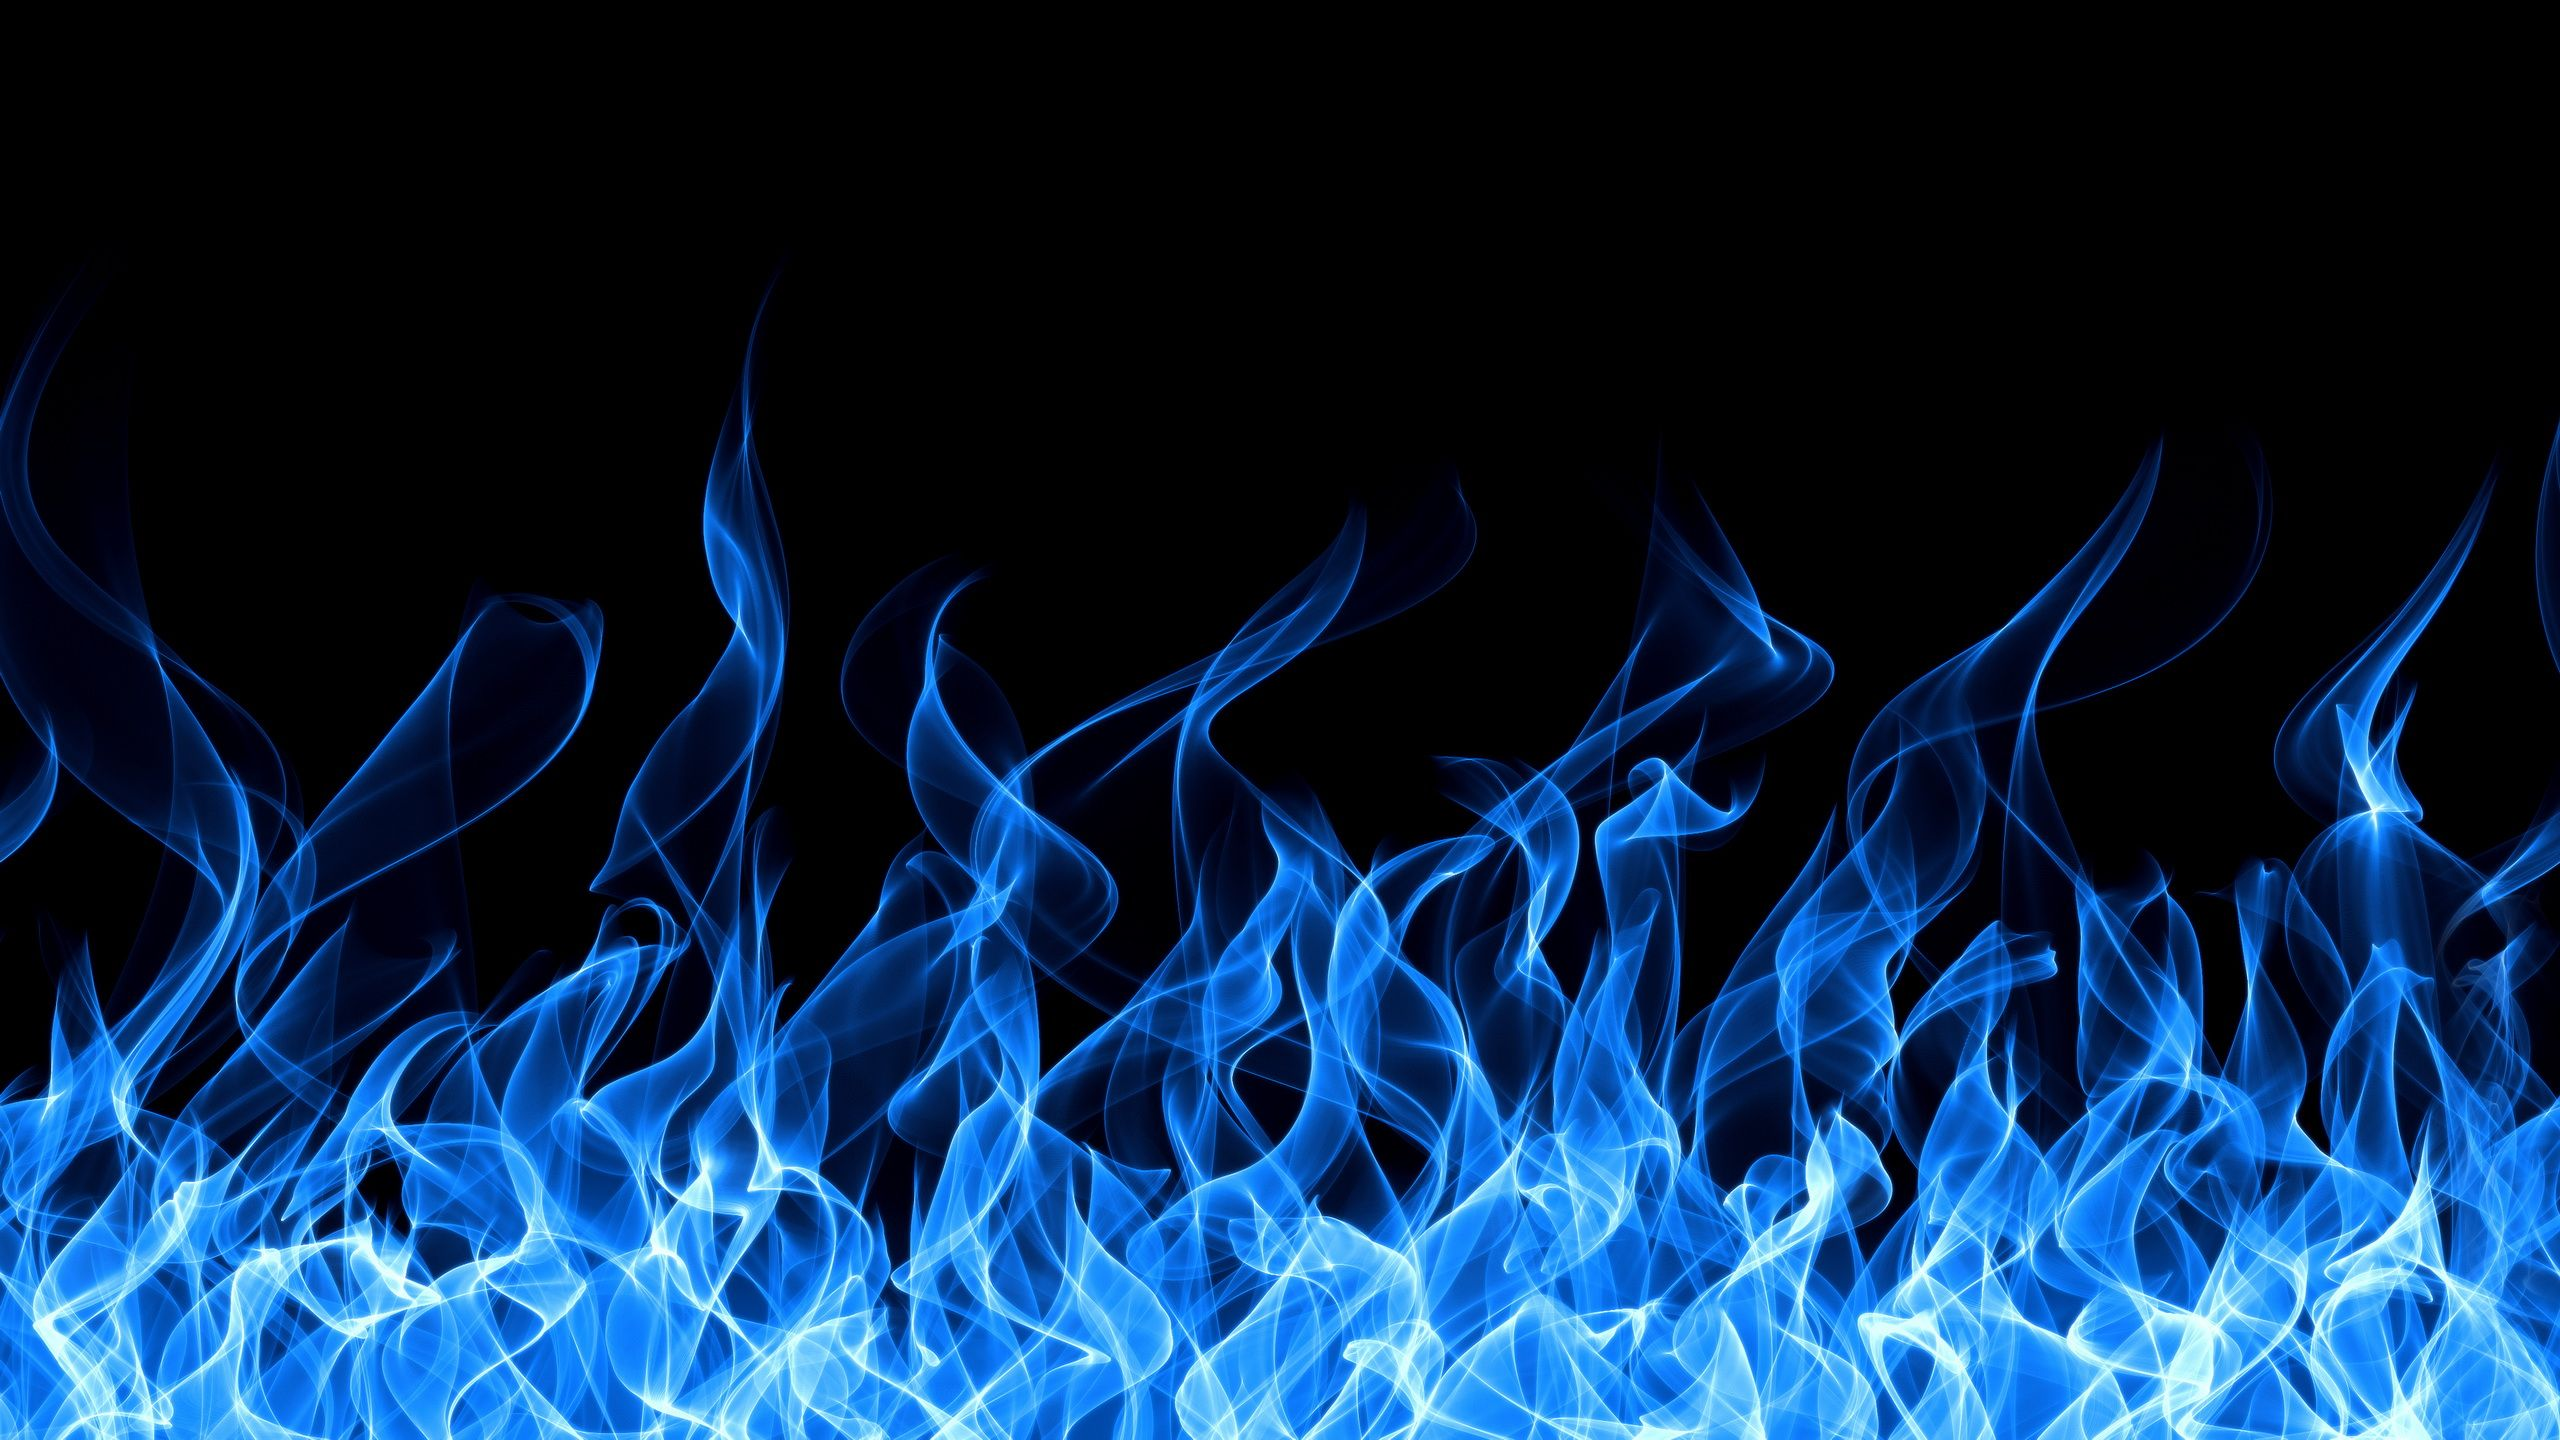 Blue Flames Wallpapers Group (59+)